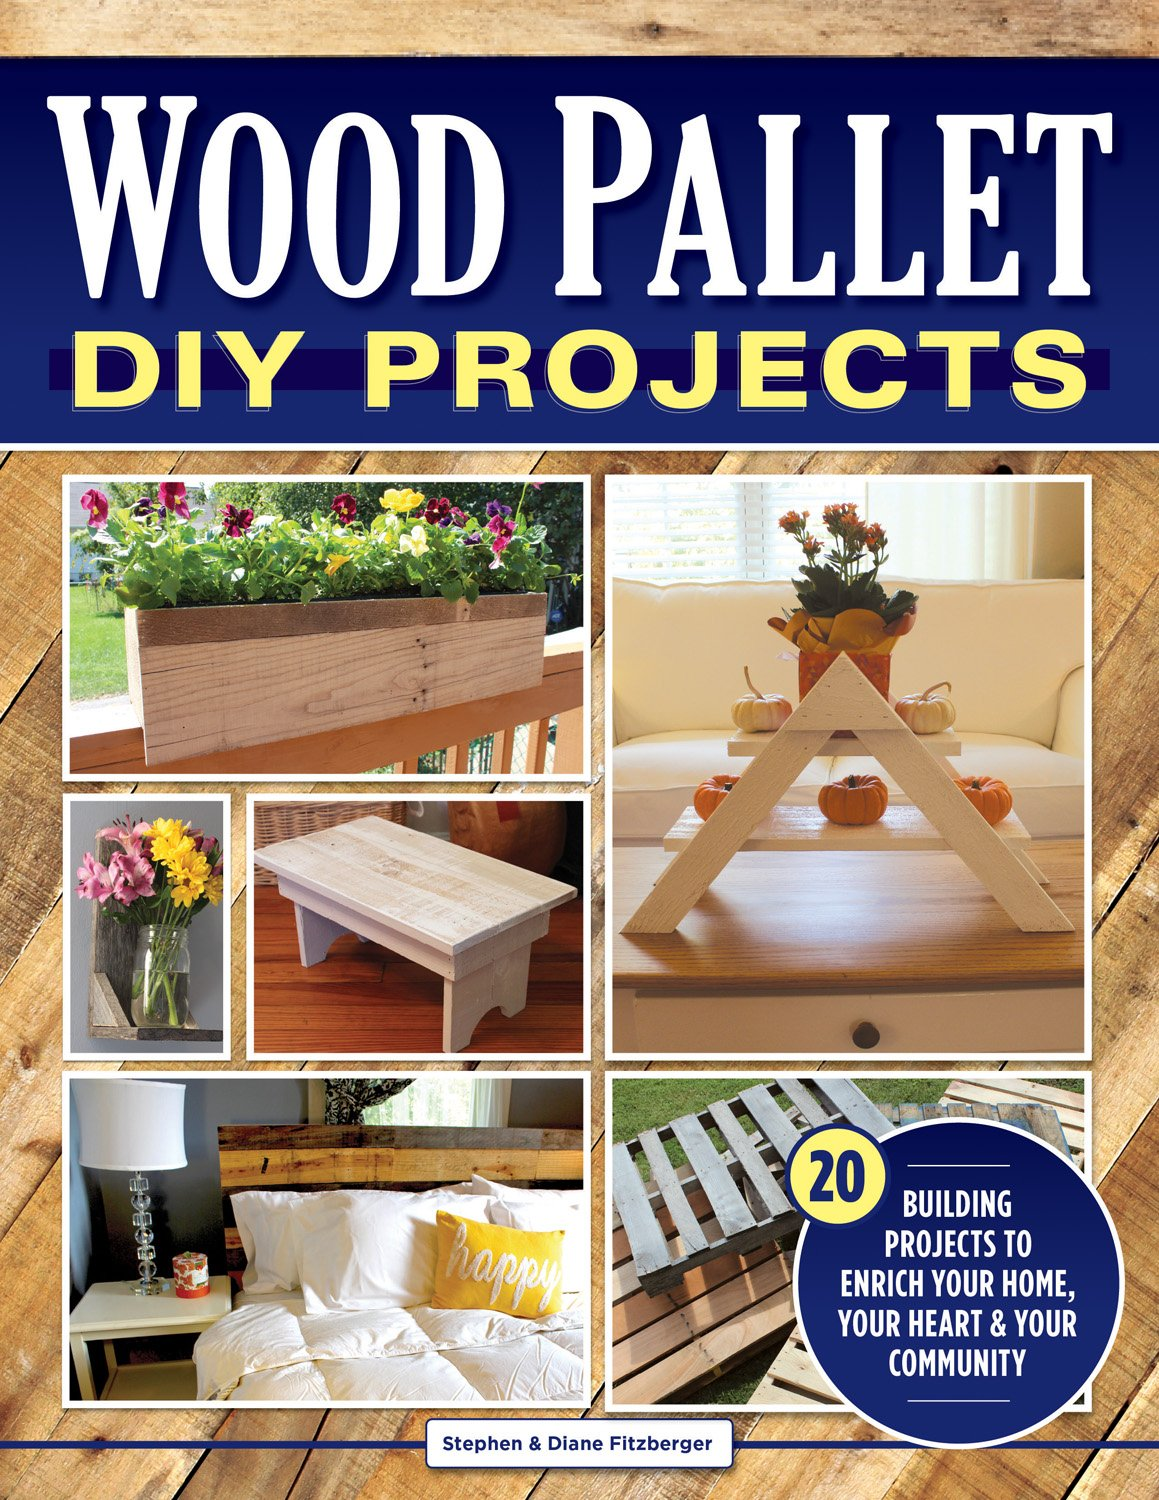 Wood Pallet Diy Projects 20 Building Projects To Enrich